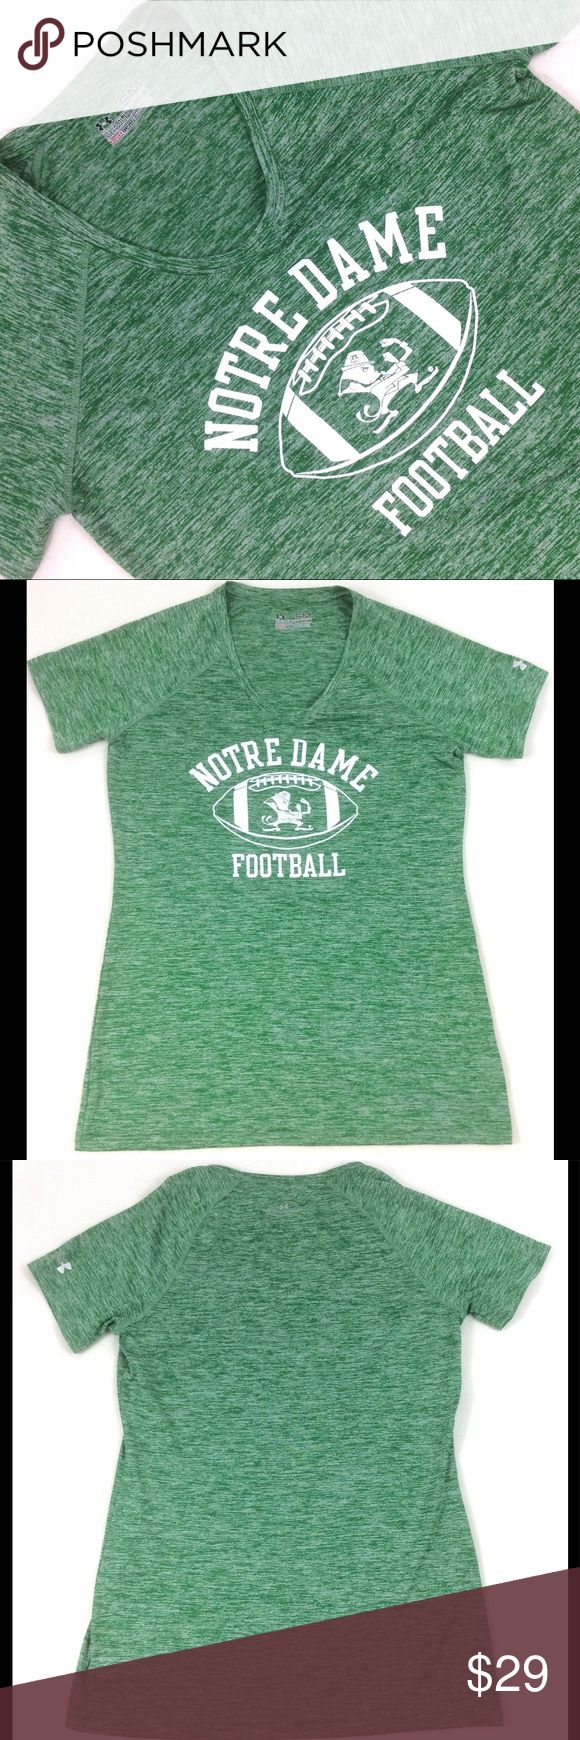 """Fighting Irish Notre Dame Football Heat Gear Norte Dame Football Under Armour. Fighting Irish.  Heat Gear. Vneck  Fantastic perfect condition never worn.  Labeled a size Small semi-fitted, exact measurements: Bust: 33"""" Full Length: 25"""" Front Length from cleavage: 19""""  id: uhln6 Under Armour Tops Tees - Short Sleeve"""